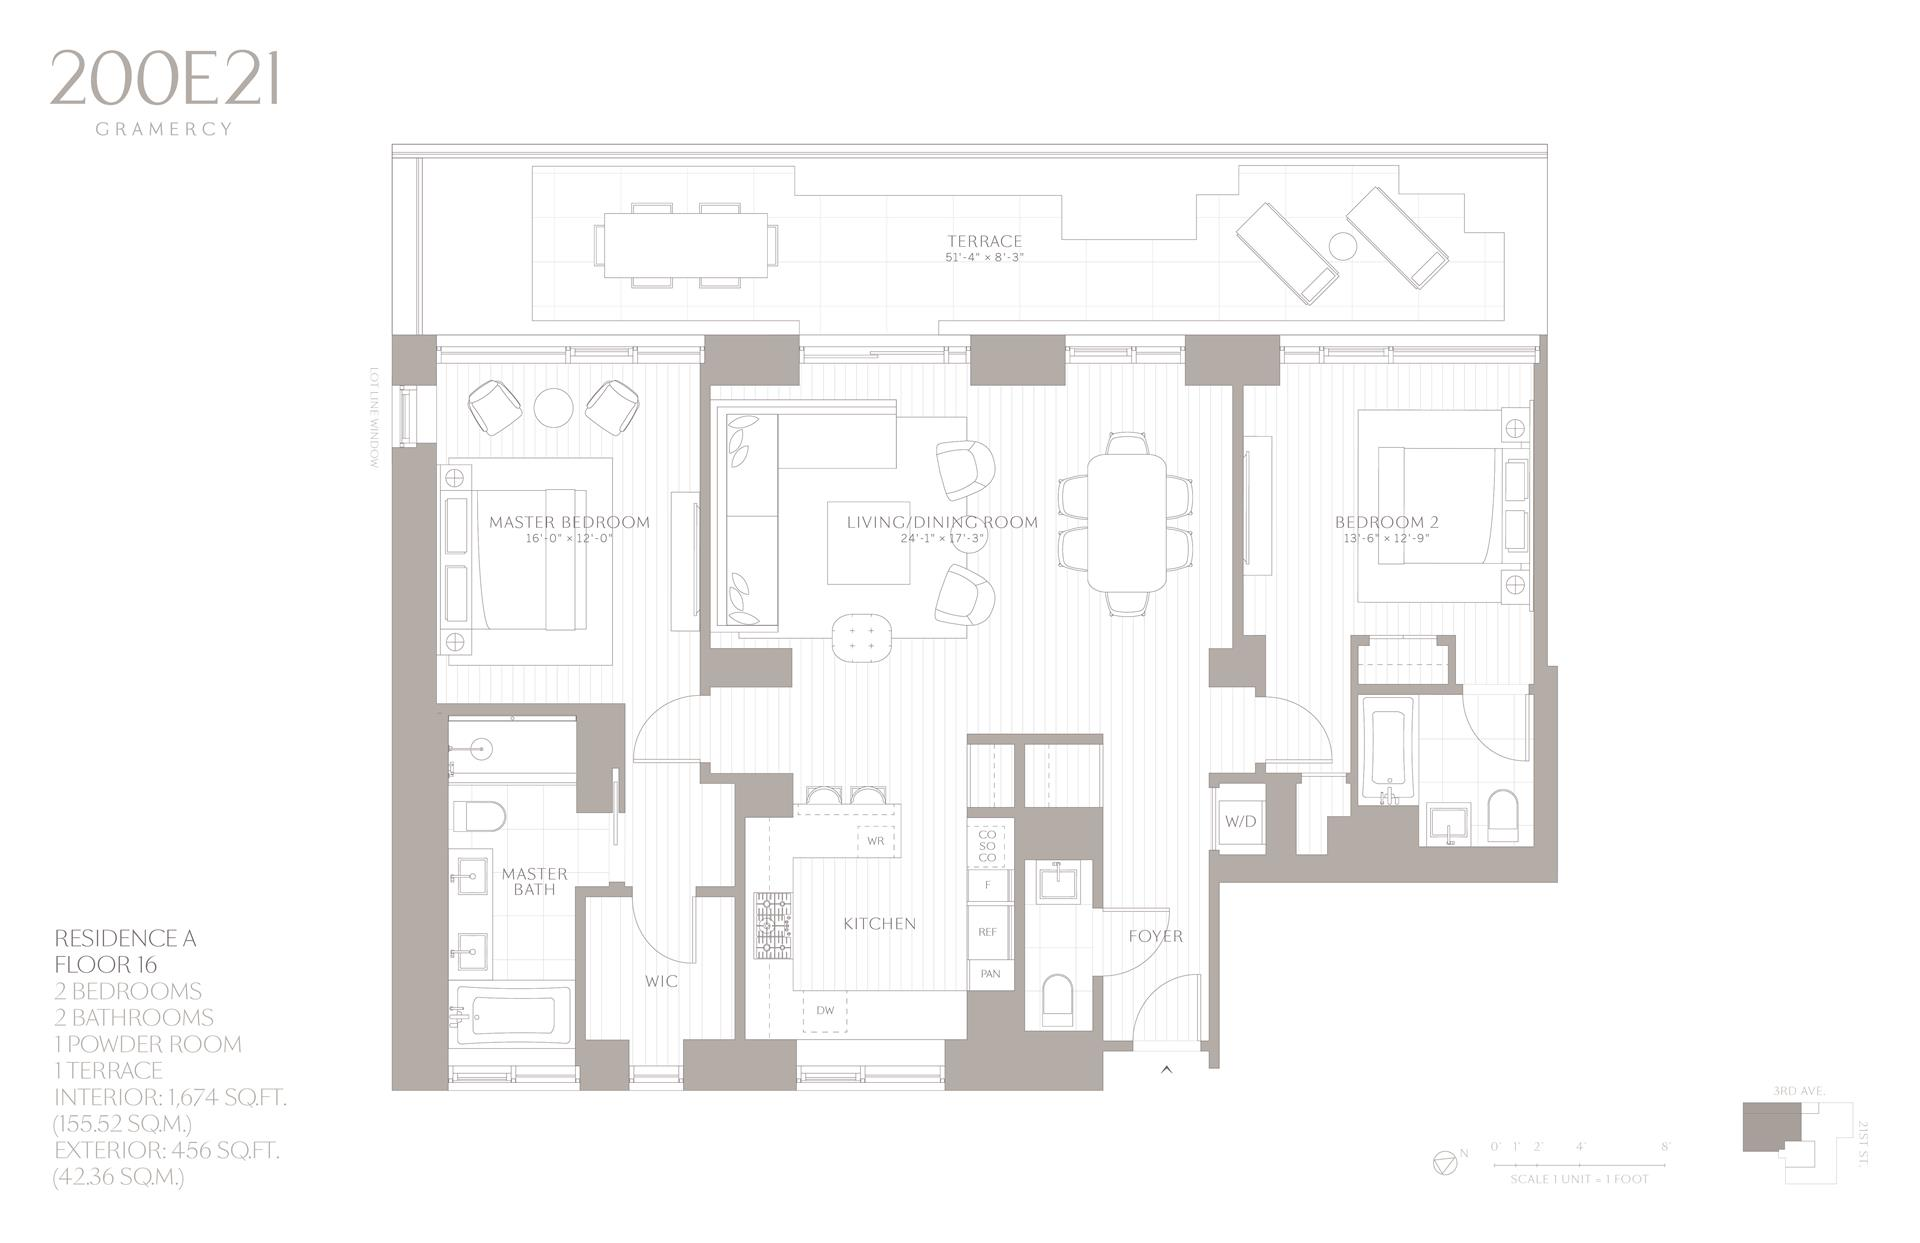 Floor plan of 200 East 21st St, 16A - Gramercy - Union Square, New York